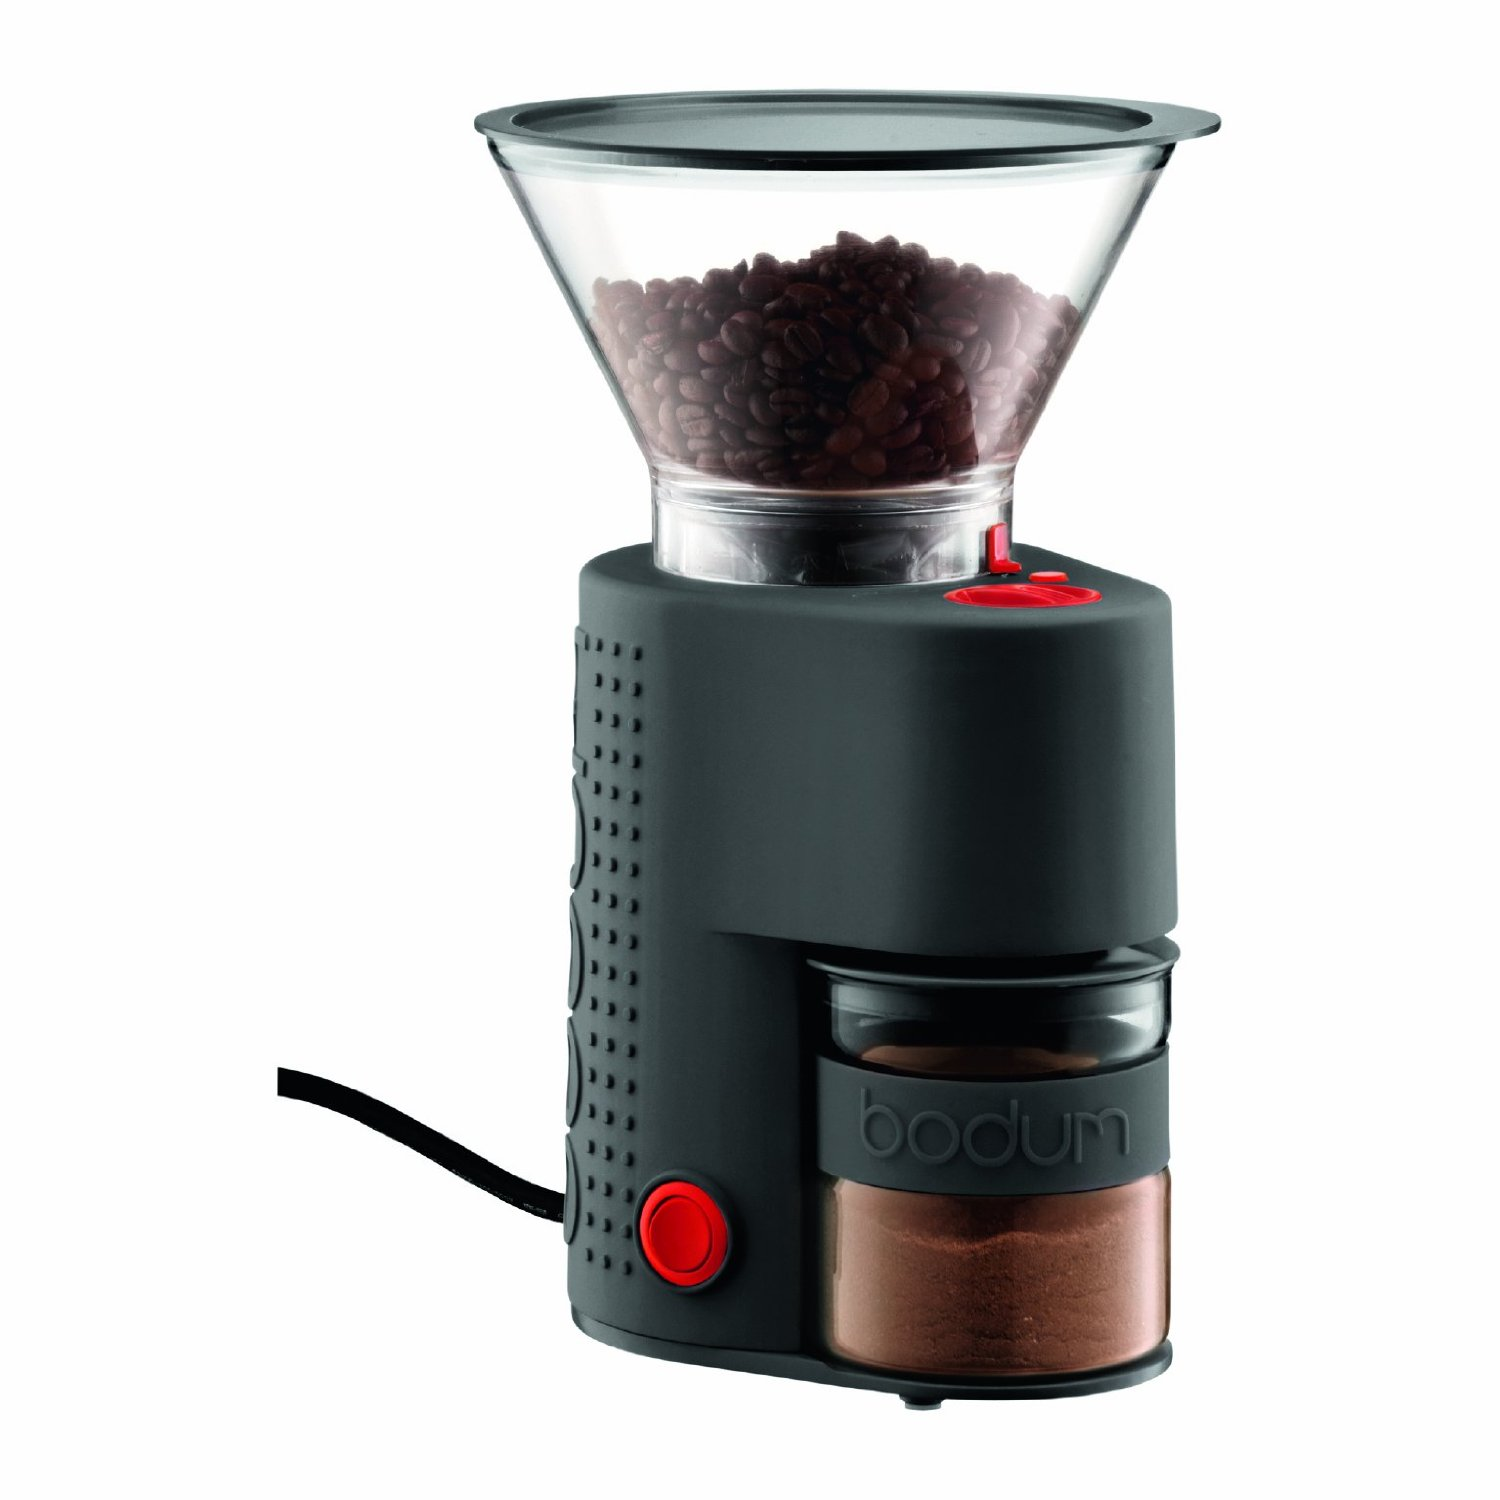 Dualit burr coffee grinder review